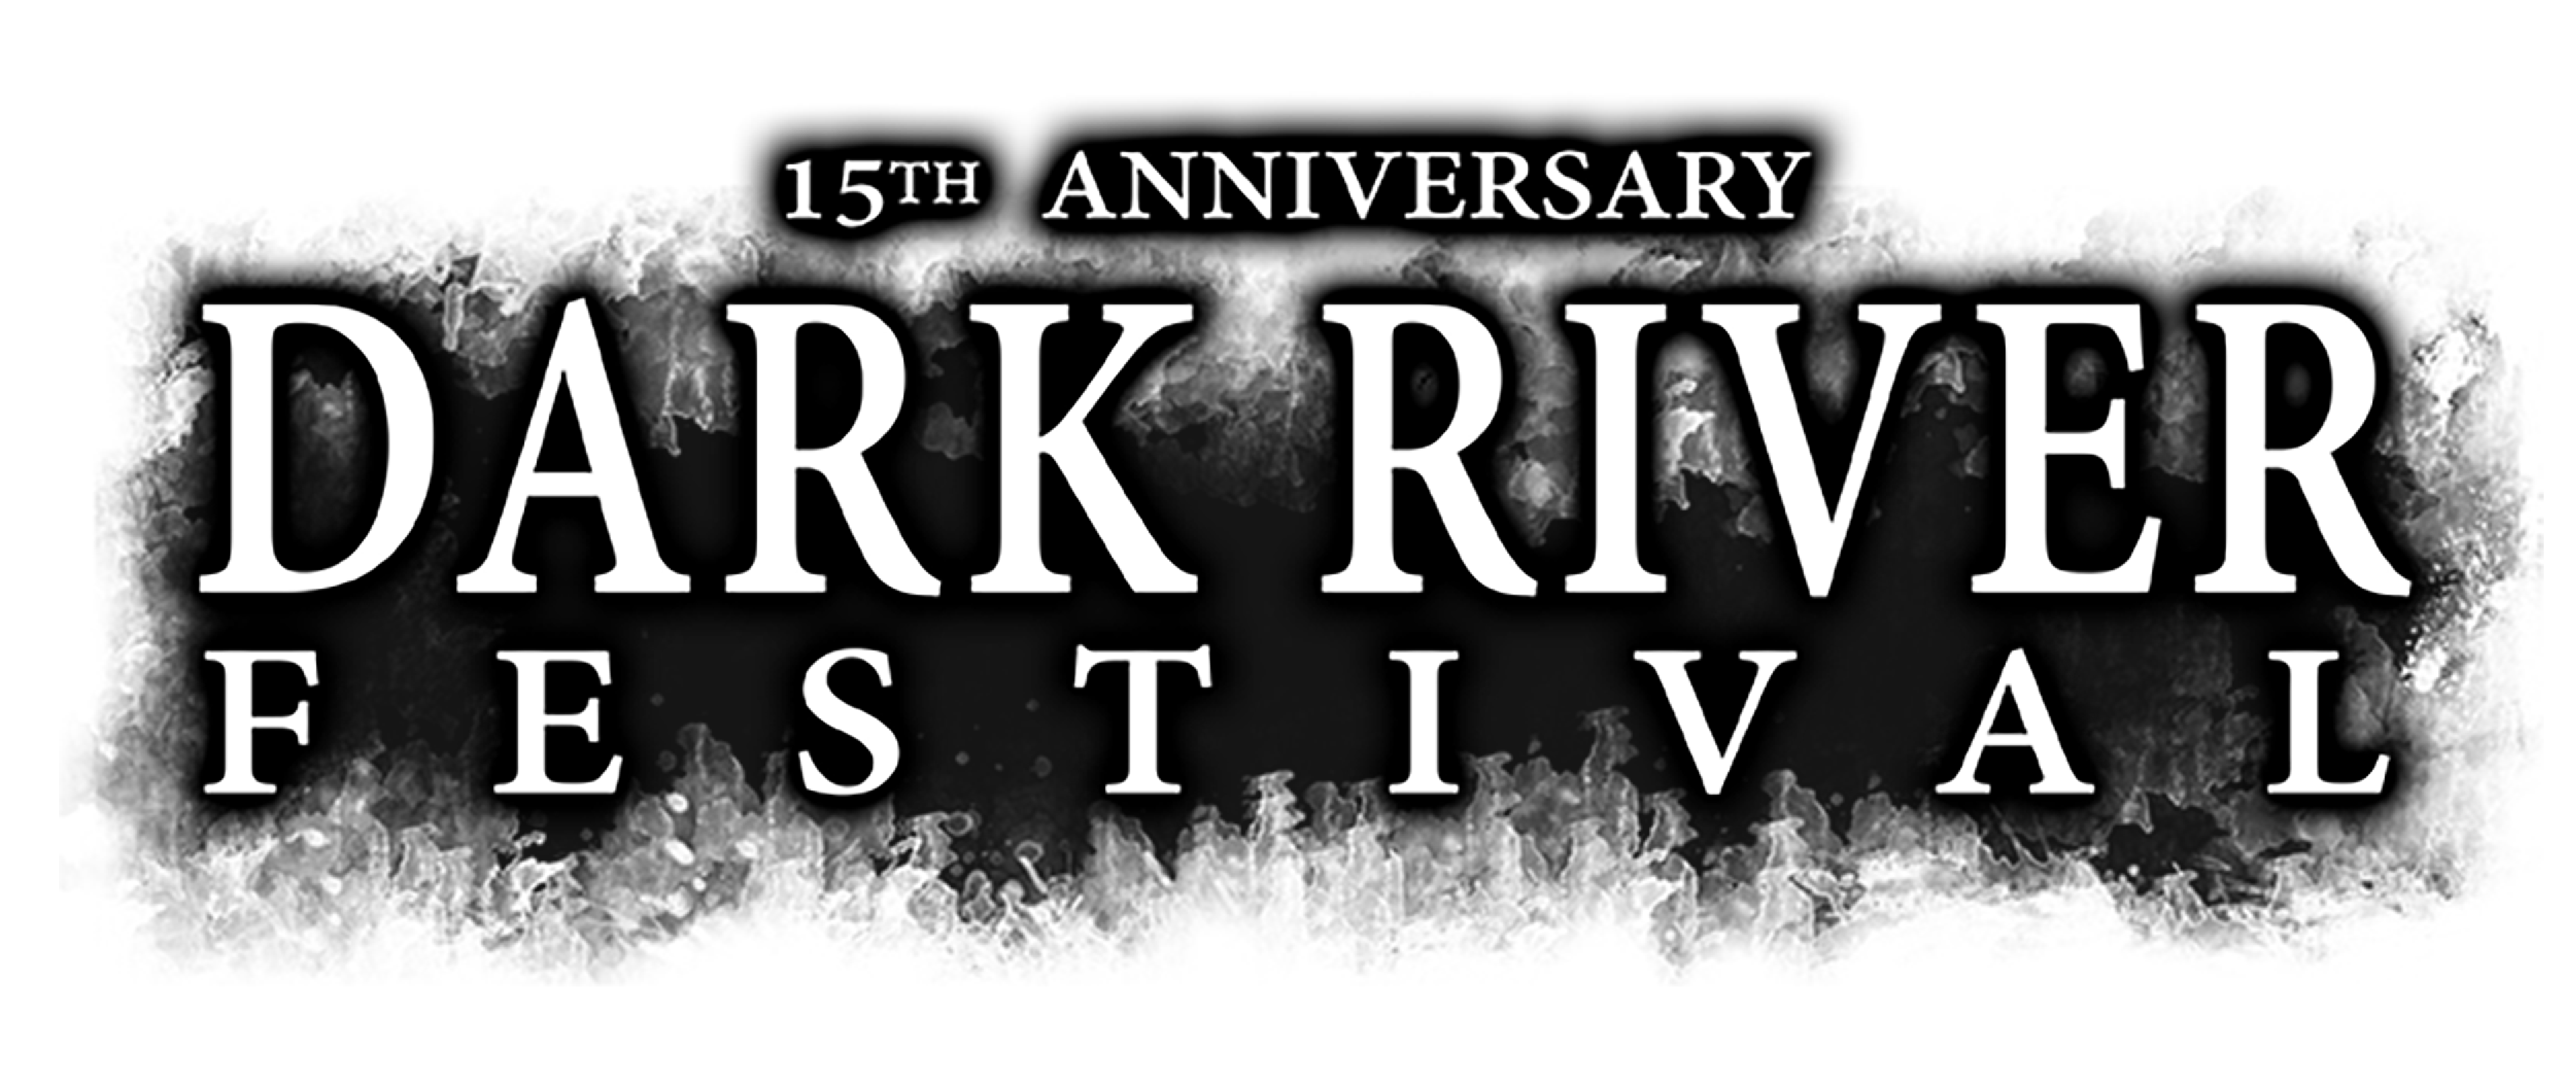 Dark River Festival – My Intimate Festival Report